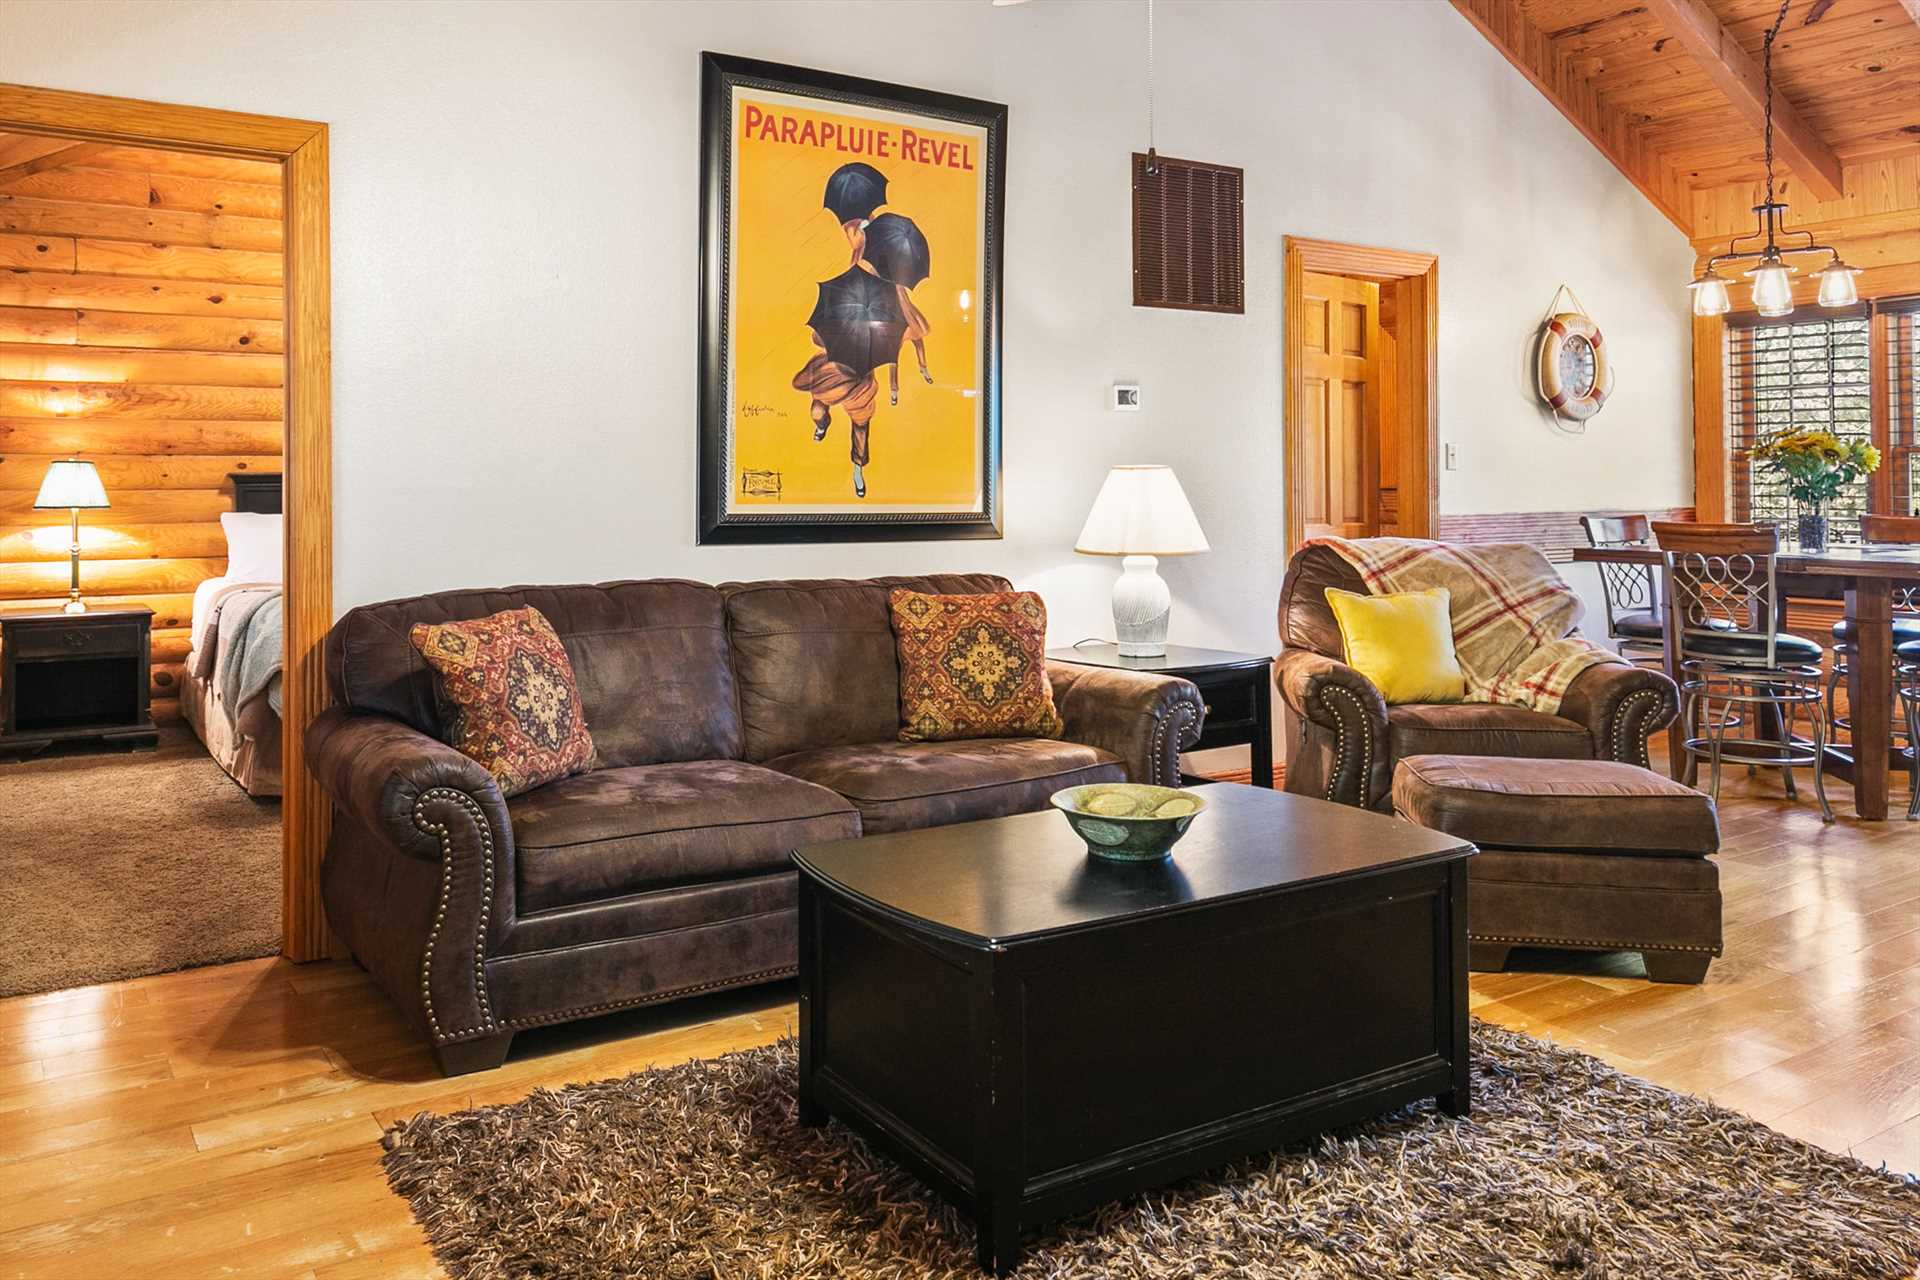 The sleeper sofa is fitted with luxury linens to accommodate